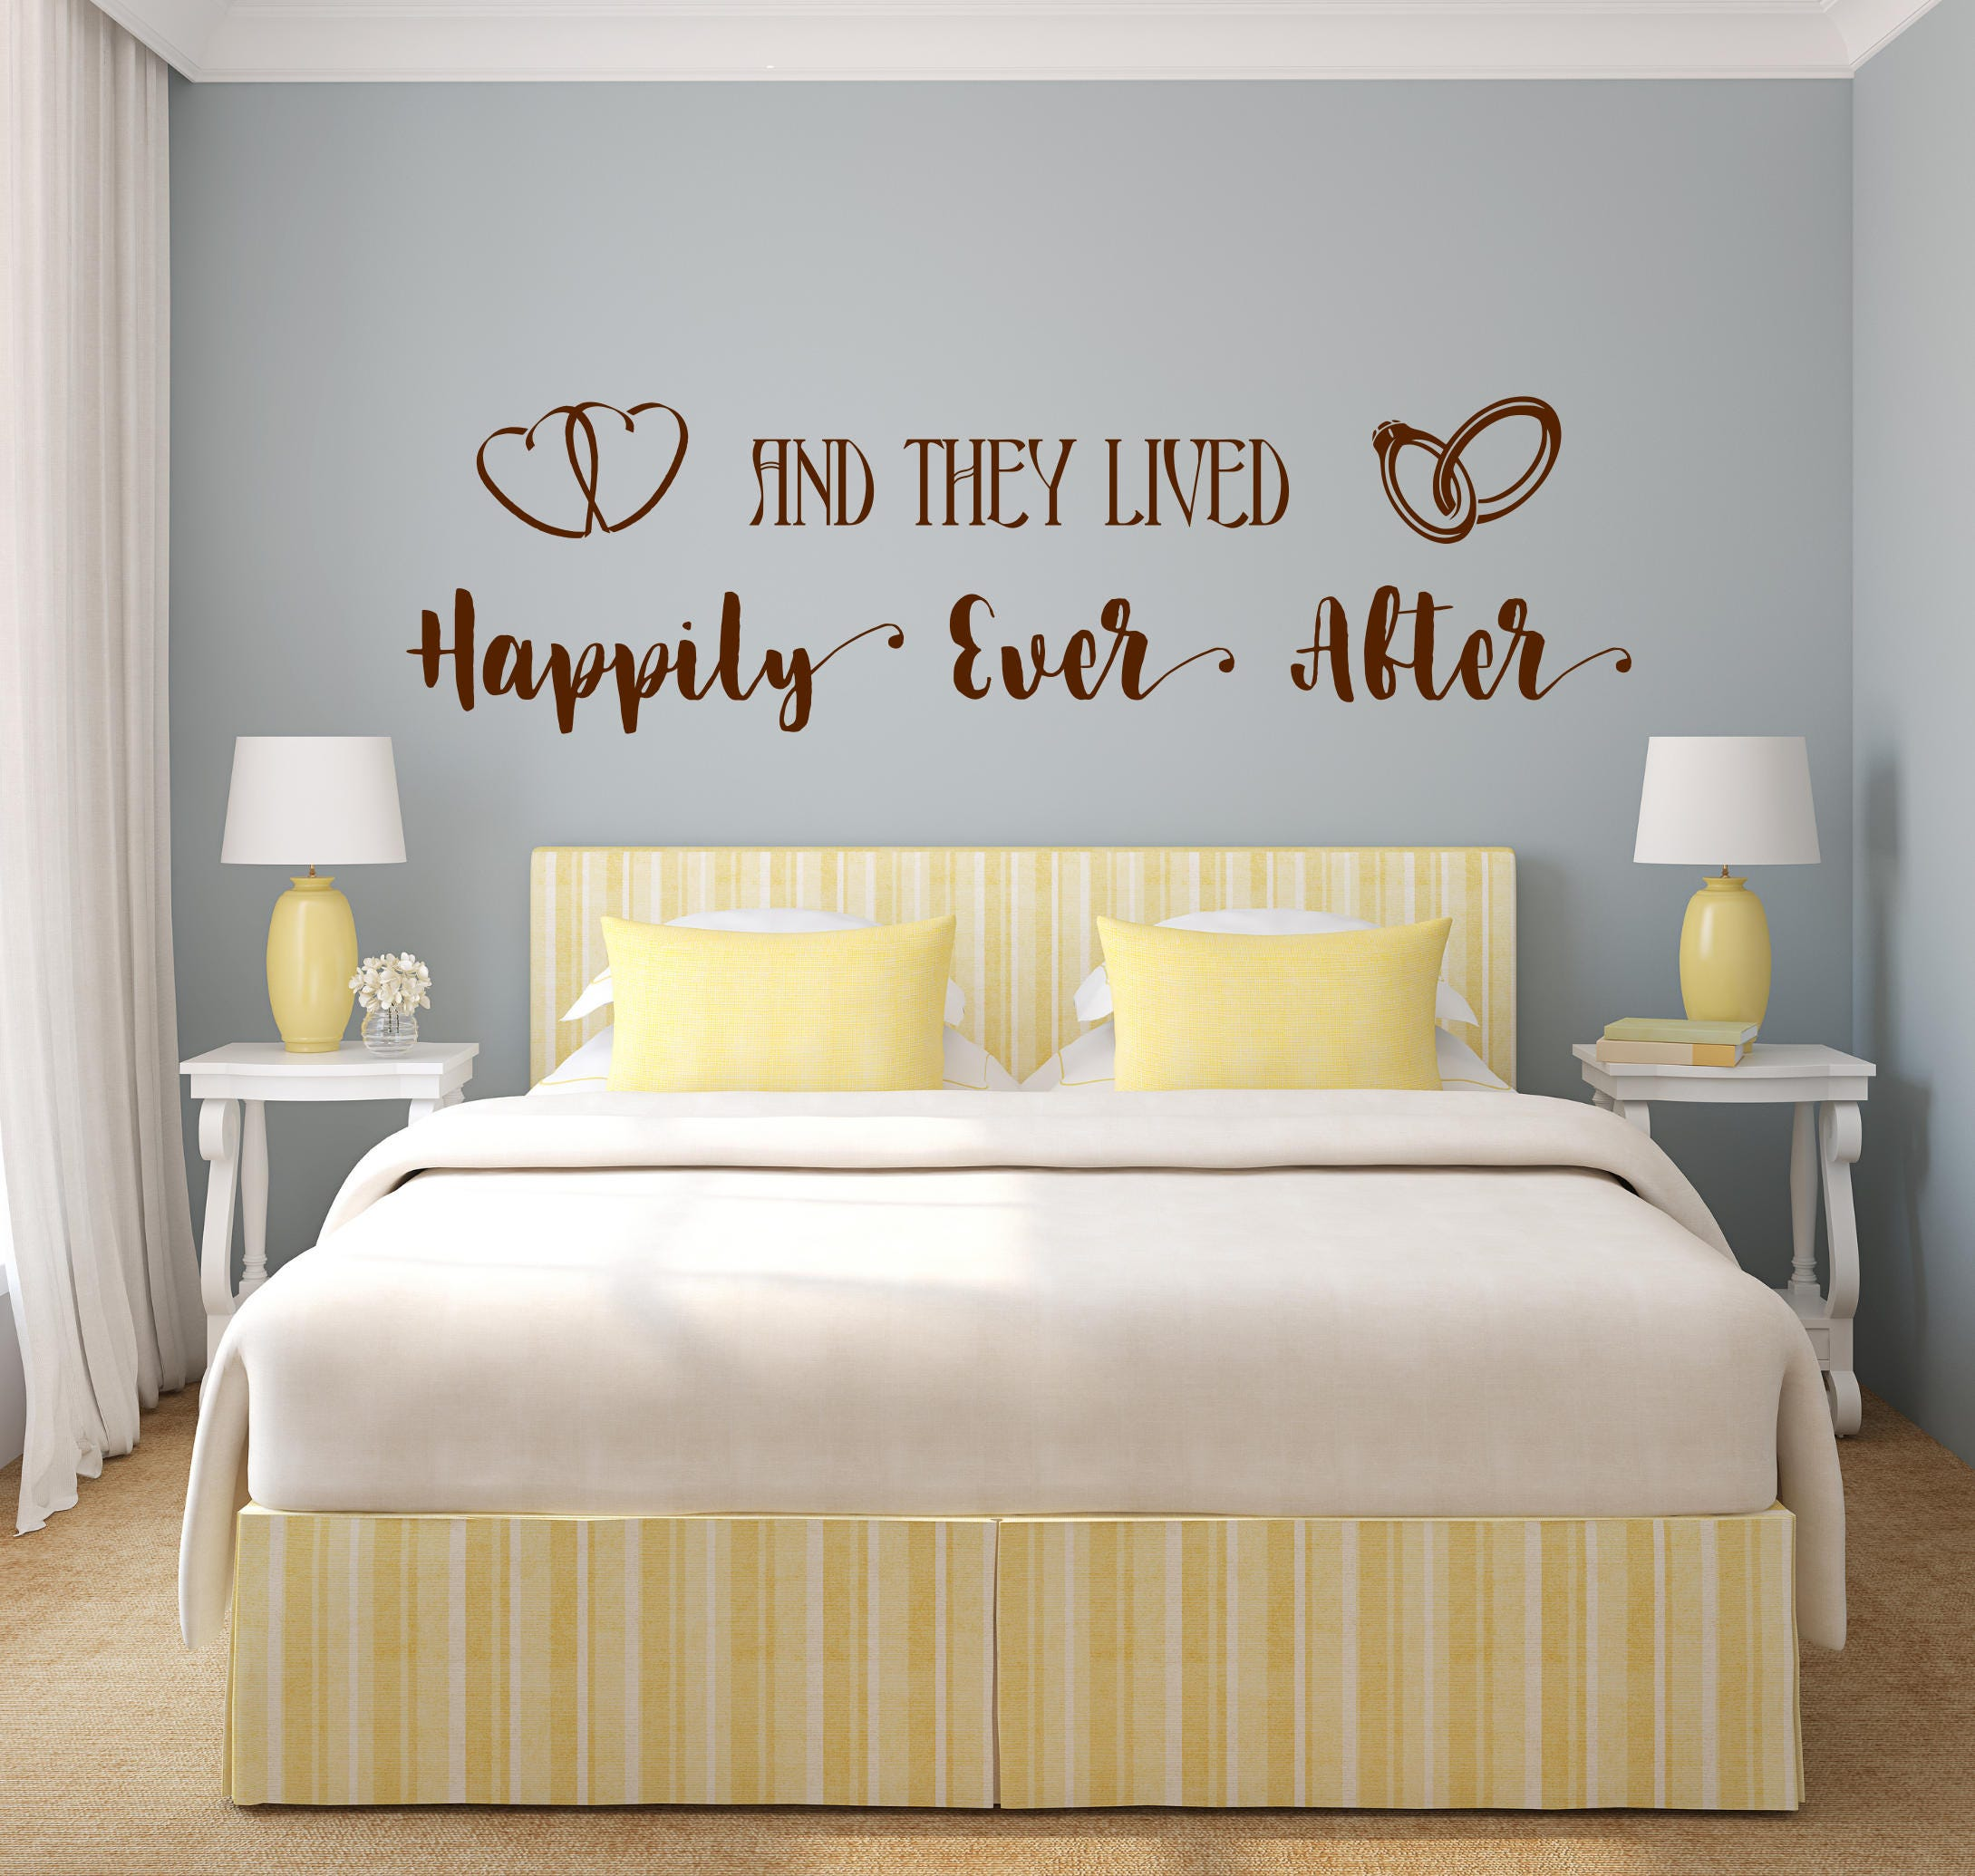 Incroyable Happily Ever After Decal, Happily Ever After Sign, Bedroom Wall Decal,  Master Bedroom Decal, Happy Together, Wedding Gift, Newlywed Gift